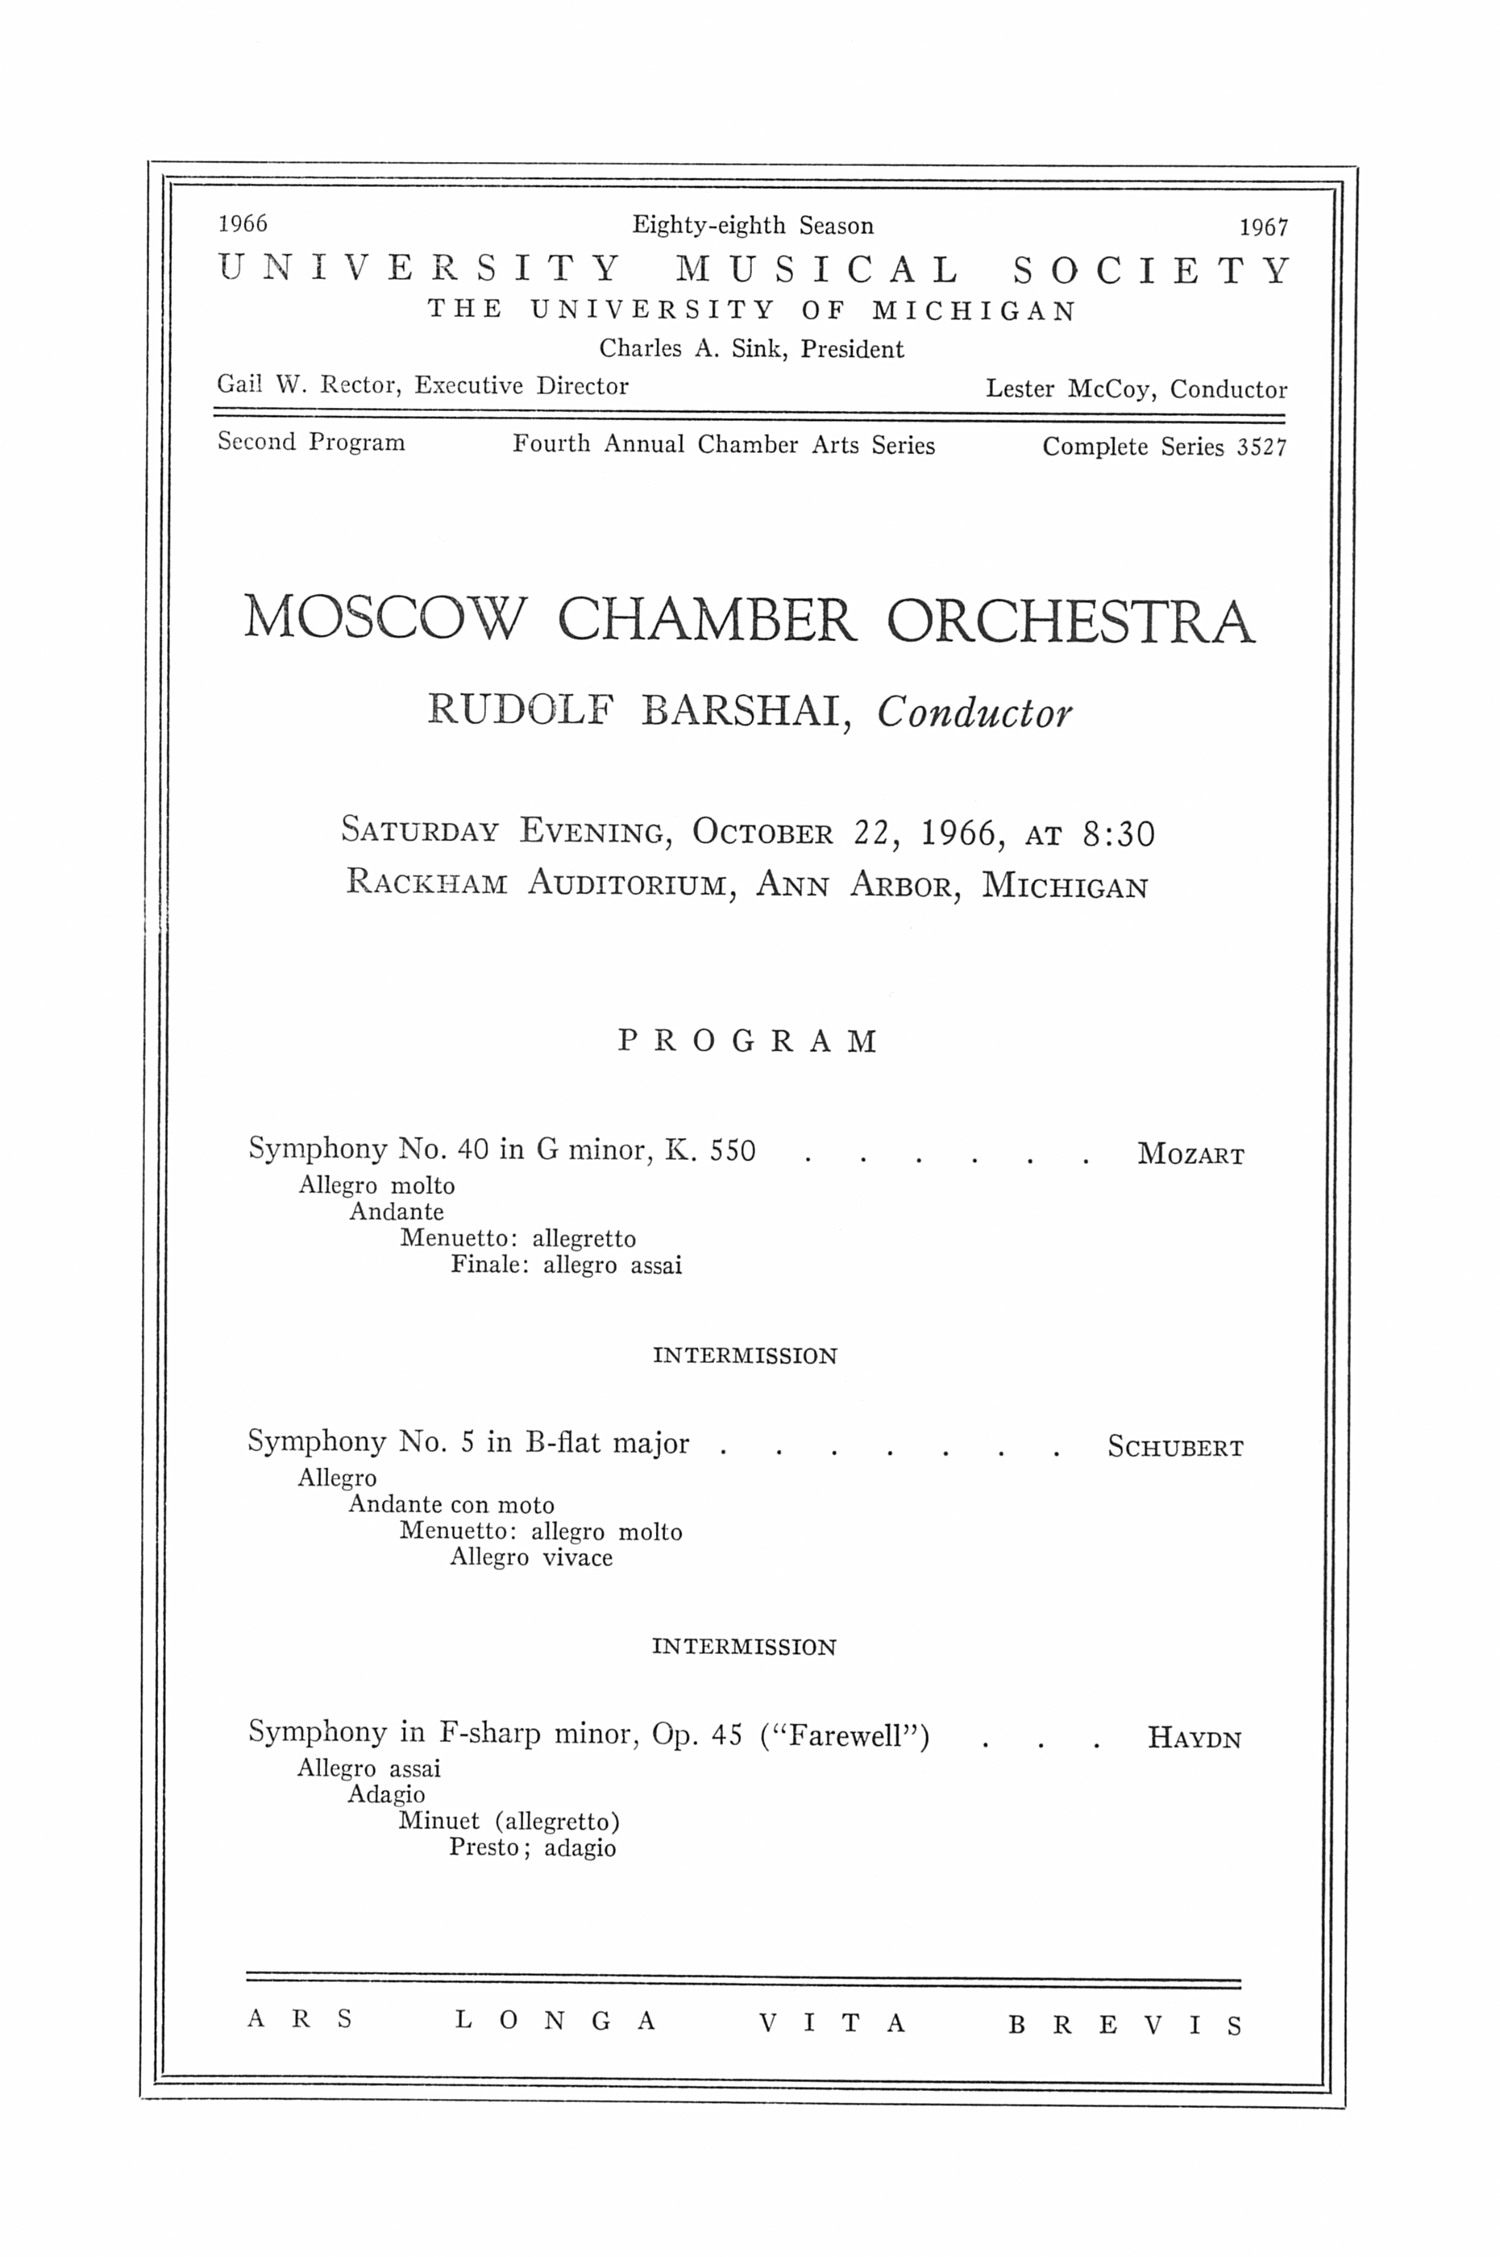 UMS Concert Program, October 22, 1966: Moscow Chamber Orchestra --  image